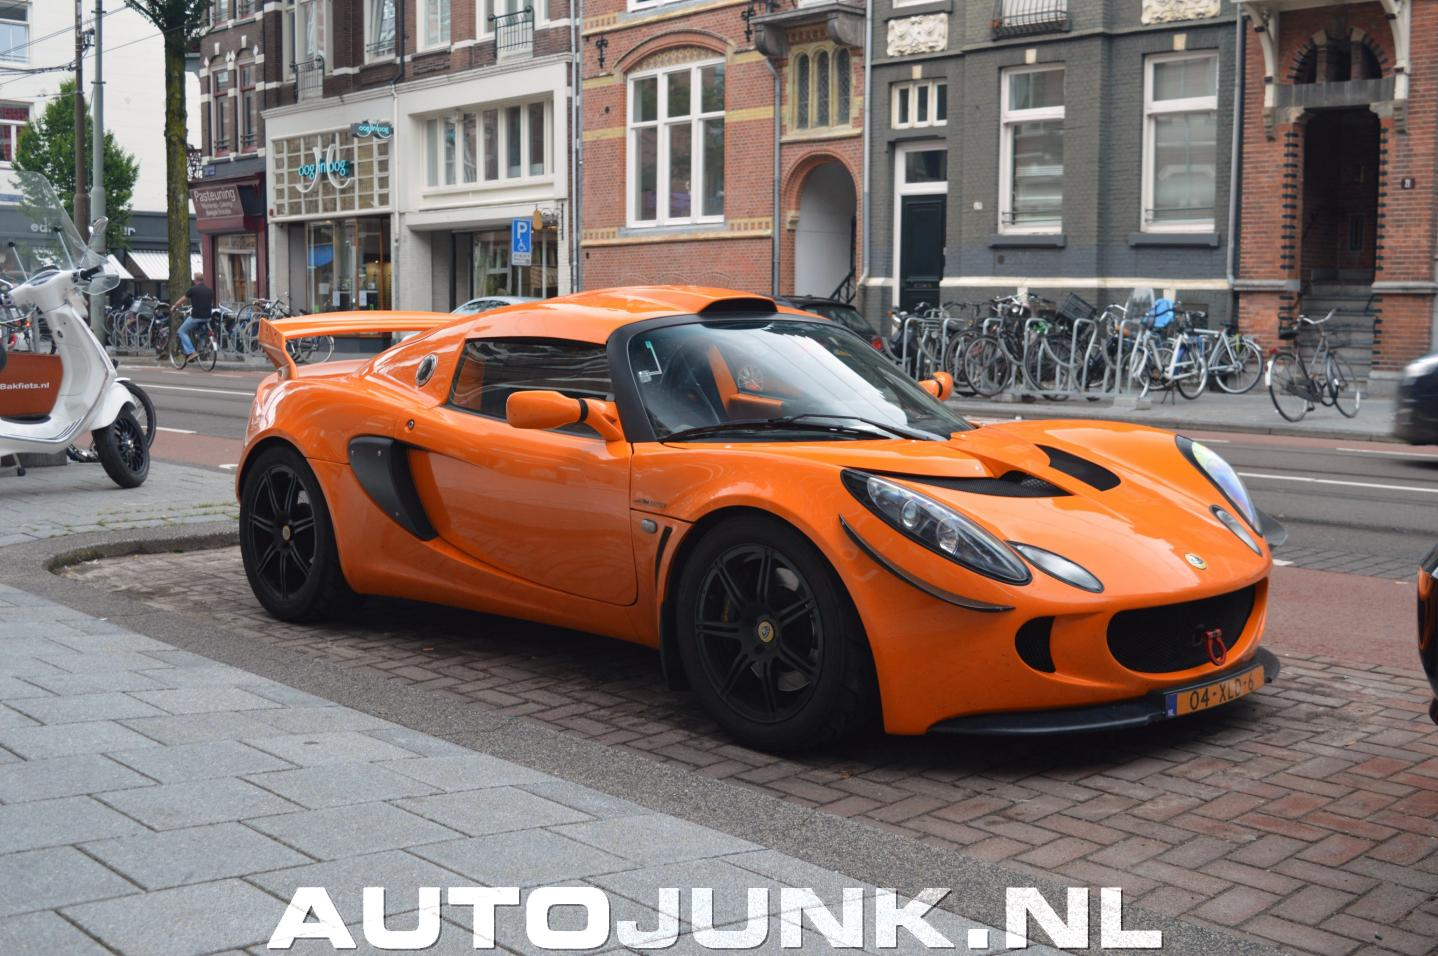 http://static.autojunk.nl/pictures/2015/0914/152008/exige-cup-260_05.jpg